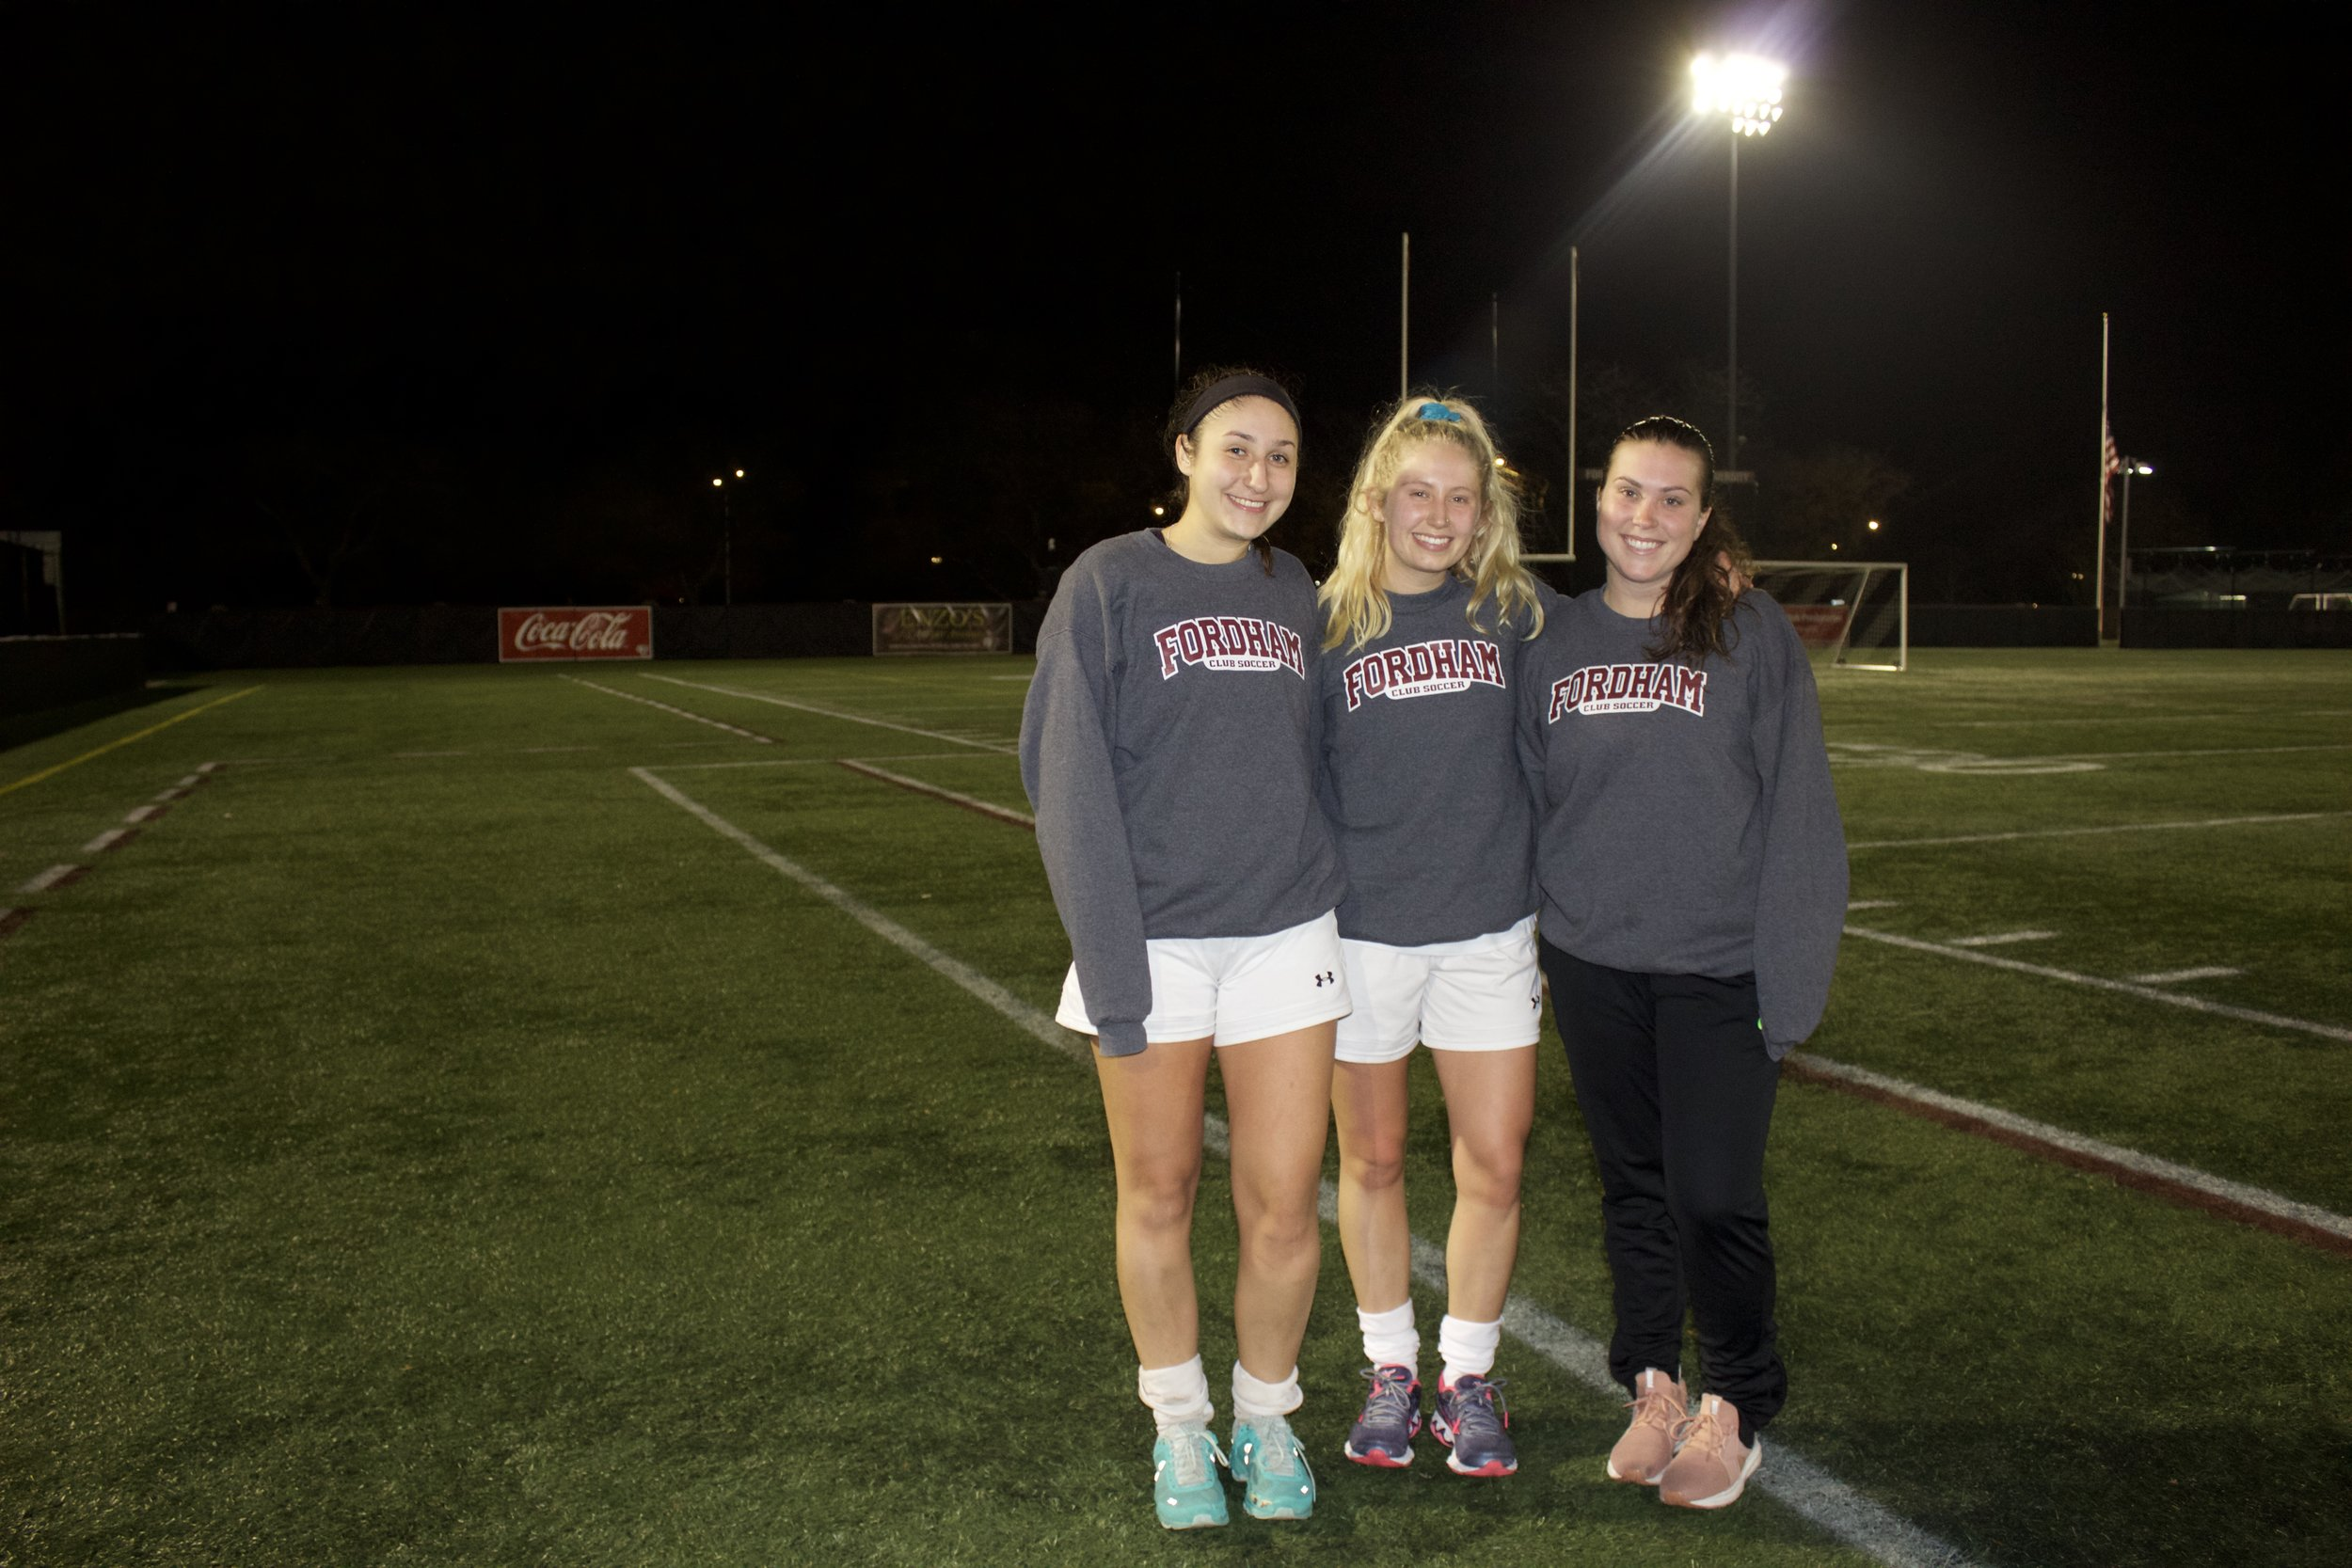 Lauren Regan with past teammates Brittany Kouroupas and Fiona Shea.